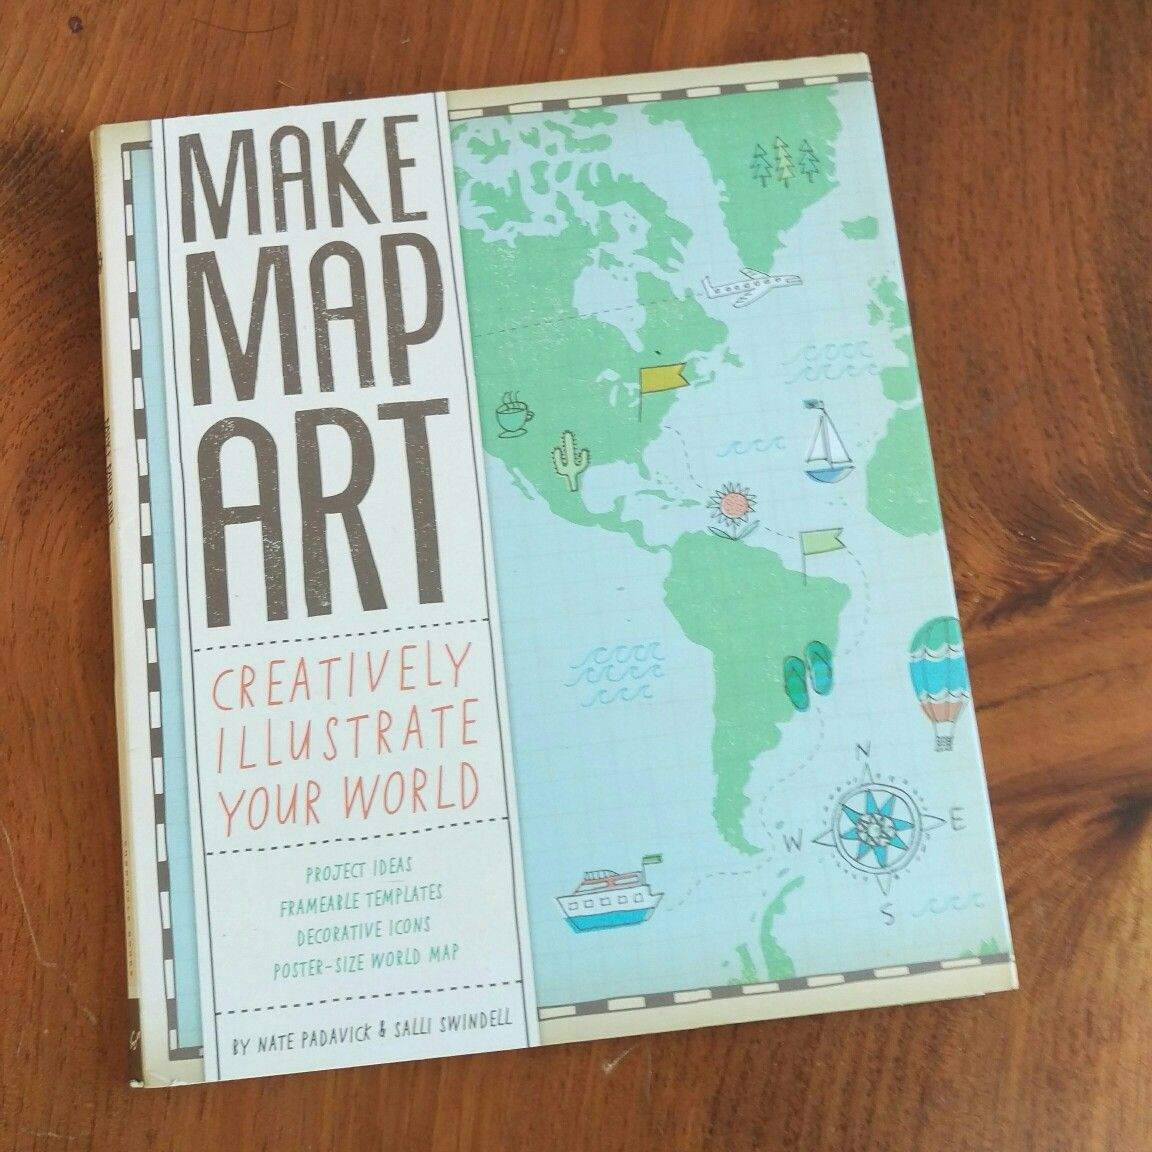 Make map art creatively illustrate your world project ideas make map art creatively illustrate your world project ideas frameable templates decorative icons gumiabroncs Gallery